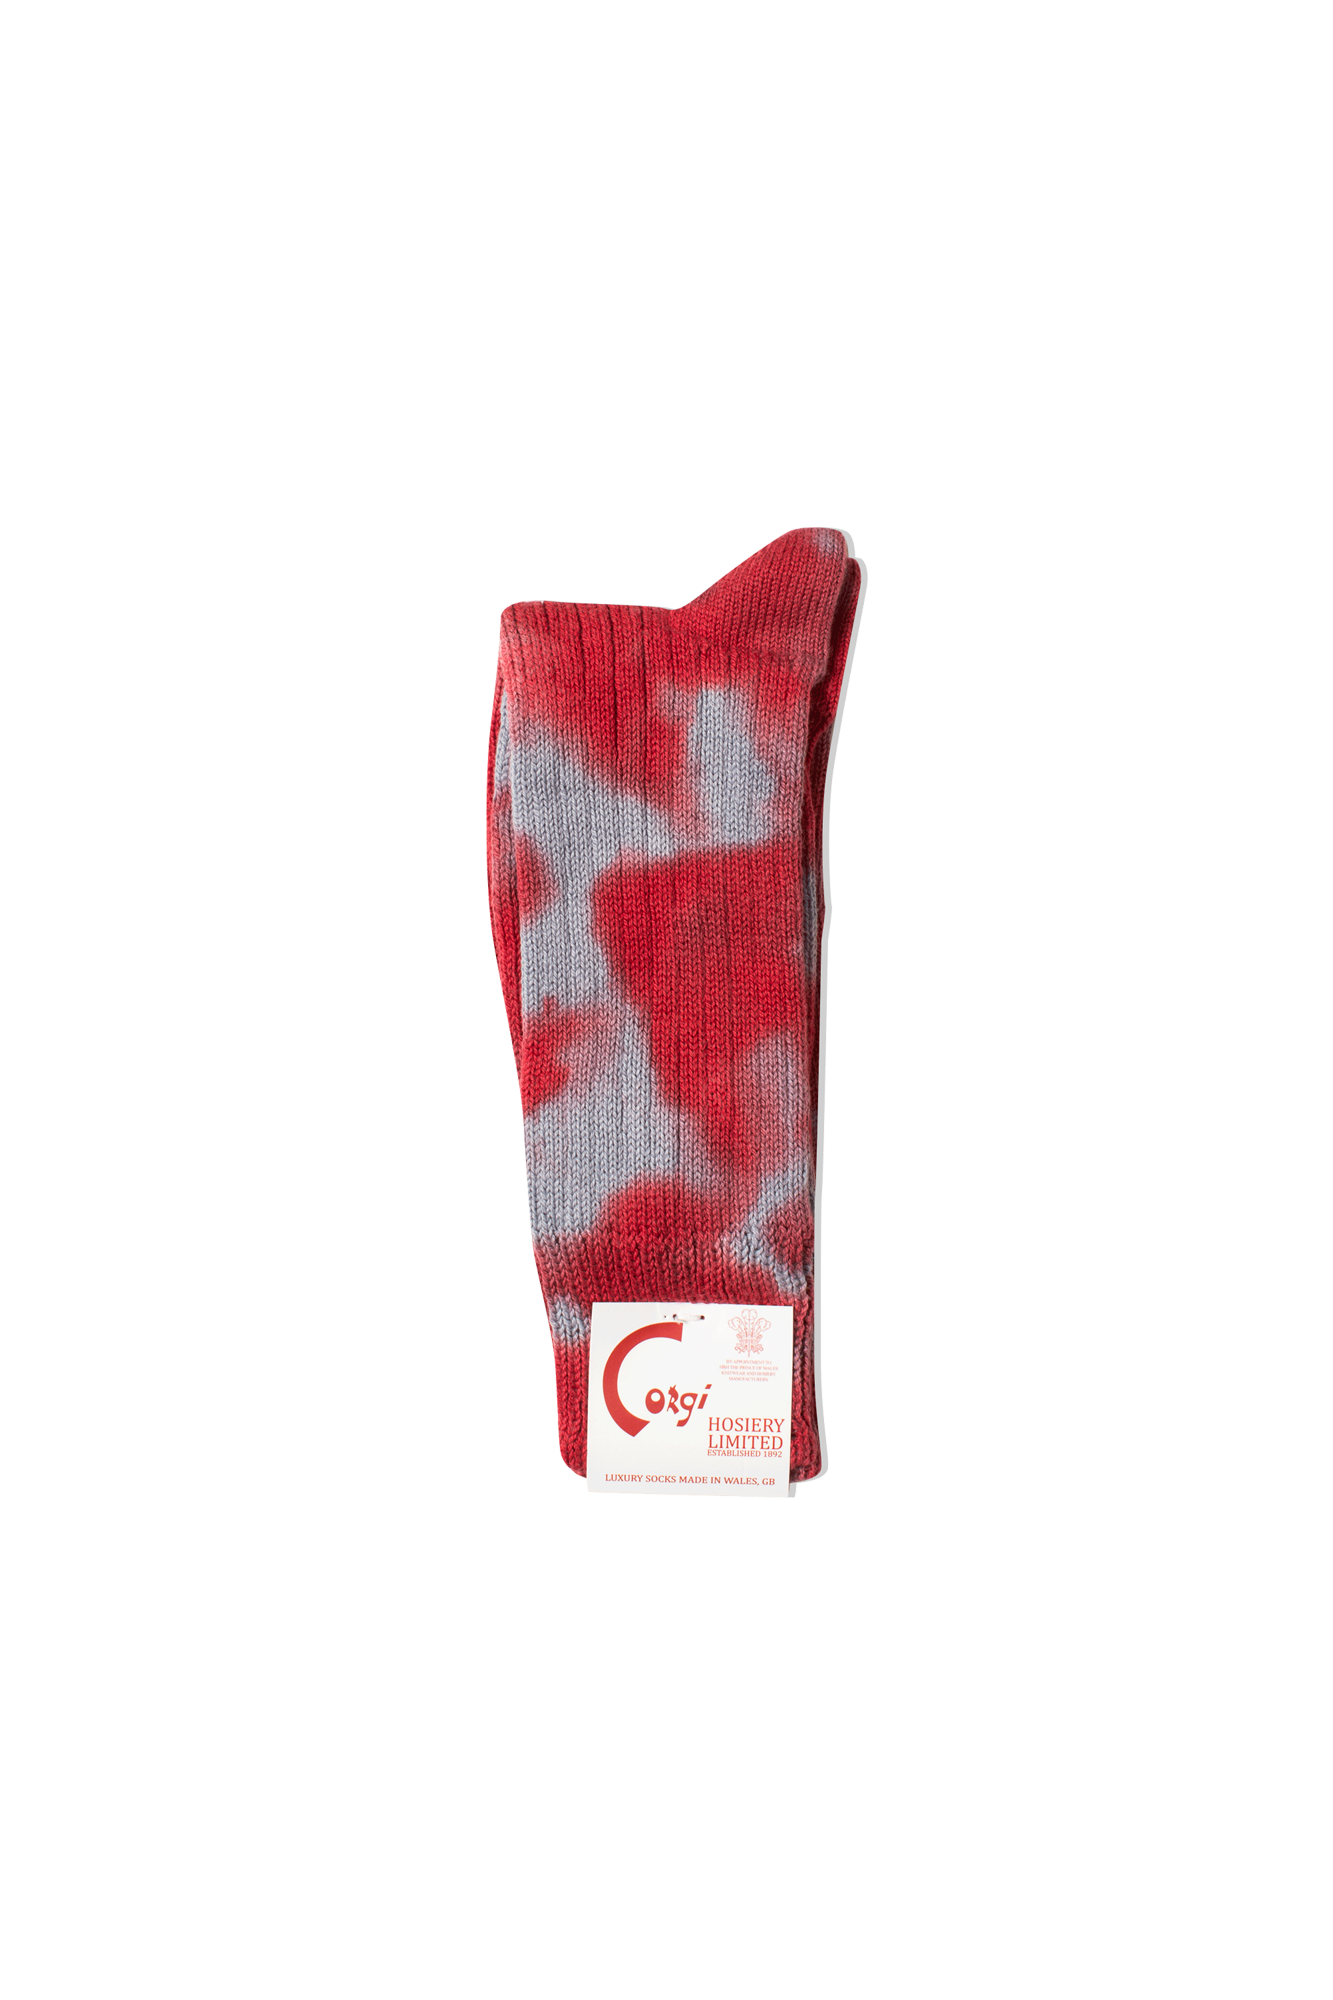 Suicoke Socks Tie Dye Sock Red OG-SOX-CG03#000#118#S - One Block Down